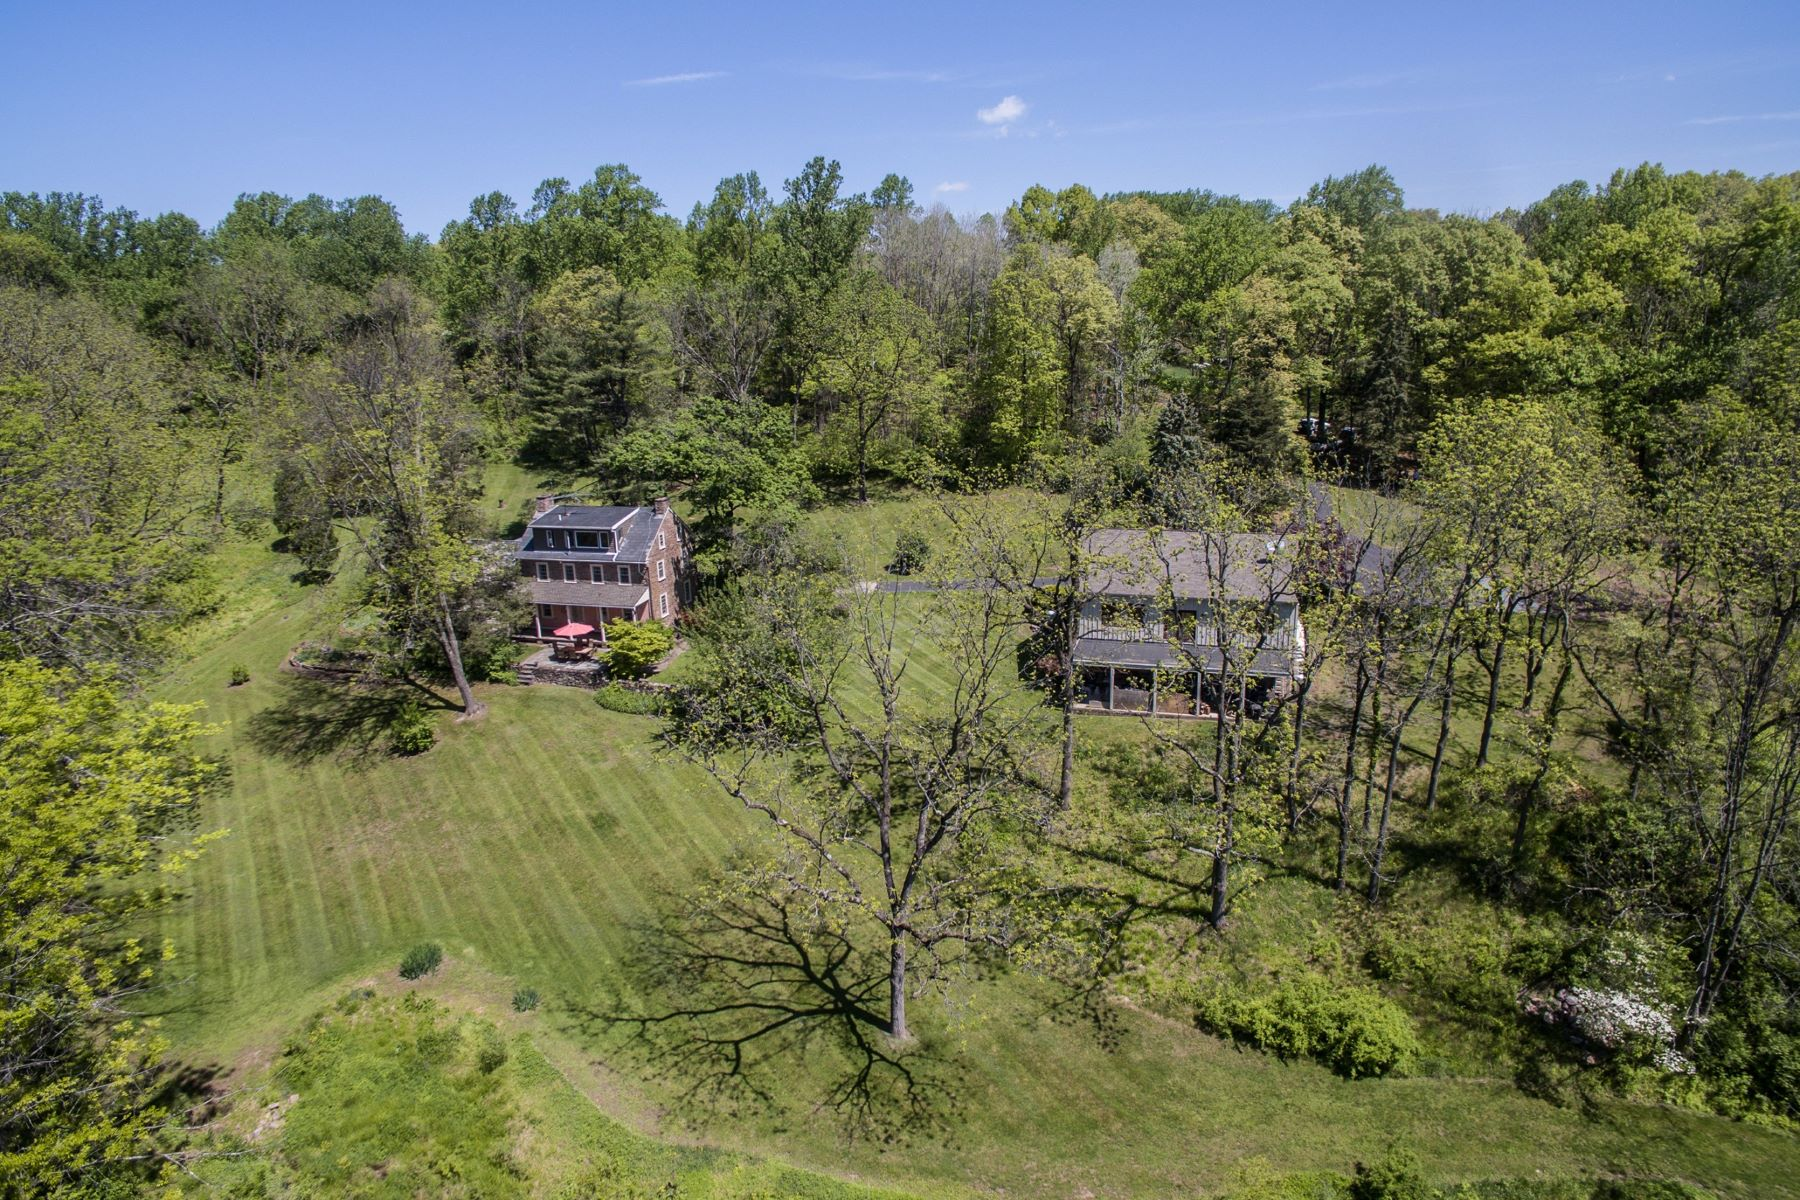 Casa Unifamiliar por un Venta en Hidden Valley Farm 2415,2415+LT DEER TRL RD, Coopersburg, Pennsylvania 18036 Estados Unidos